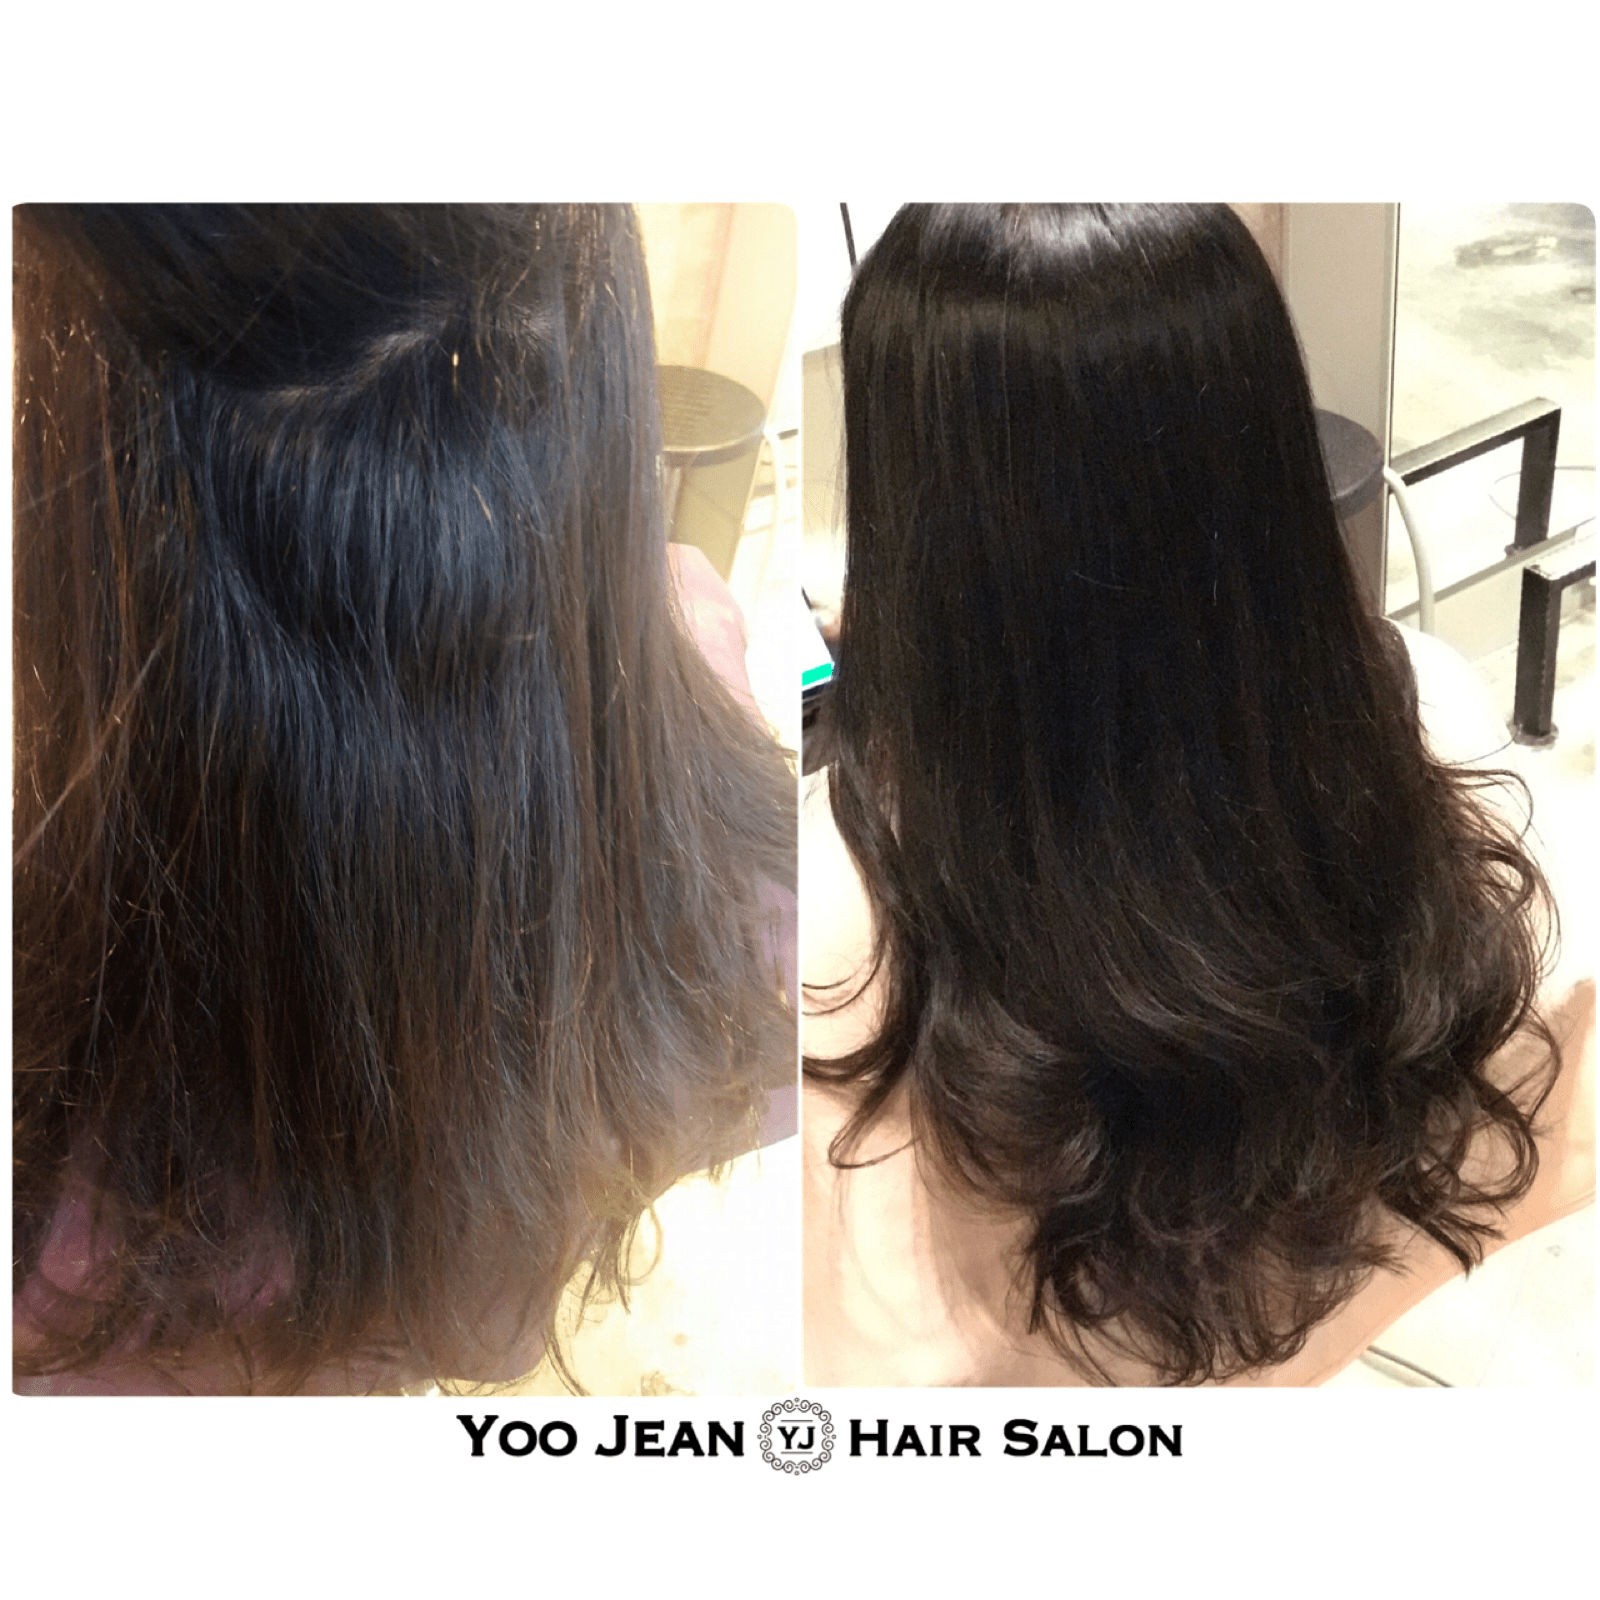 Hair Salon 1 Digital Perm Yoo Jean 39s Hair Salon Korean Hair Salon